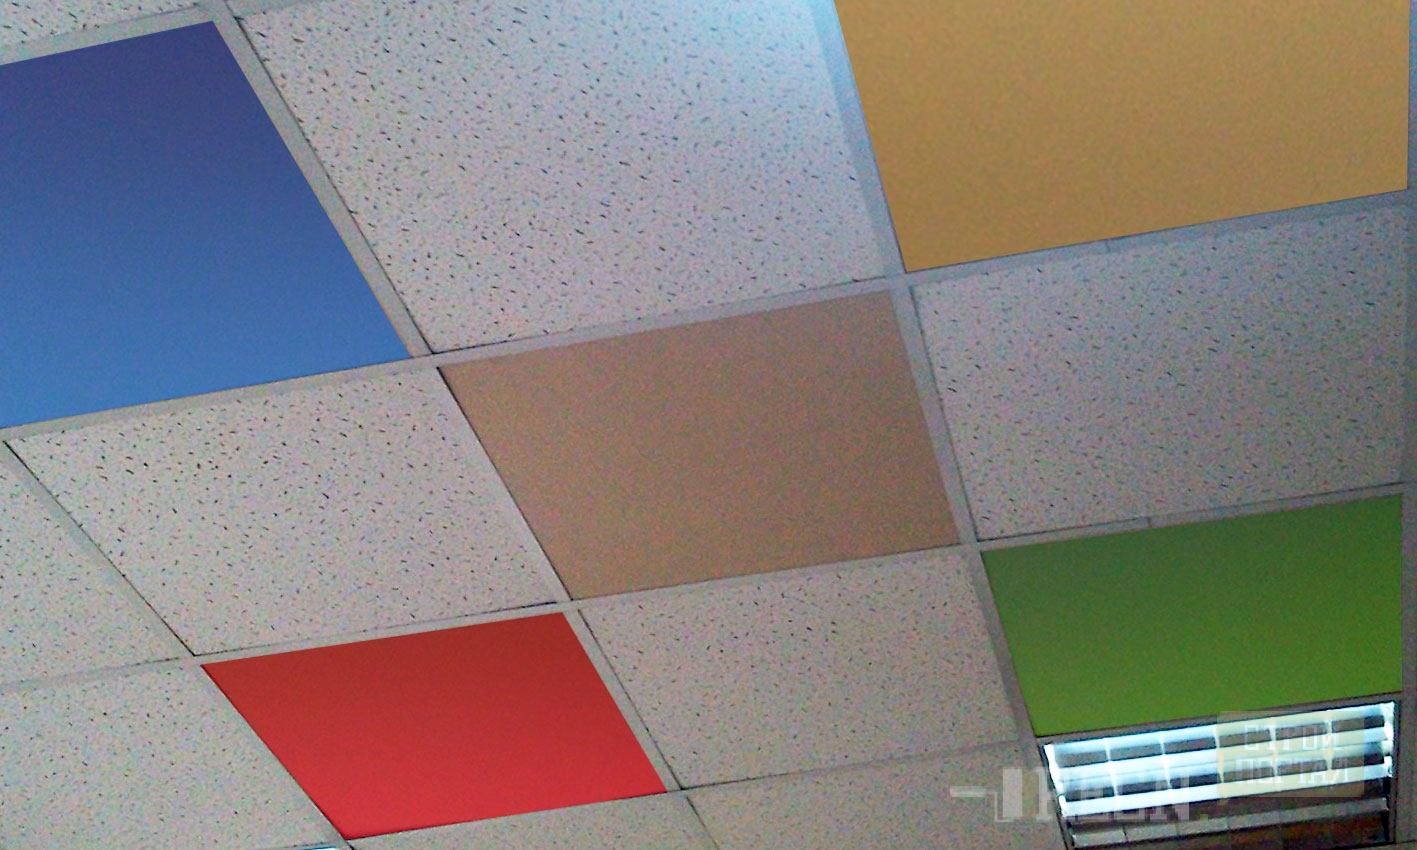 Painting ceiling tile grid